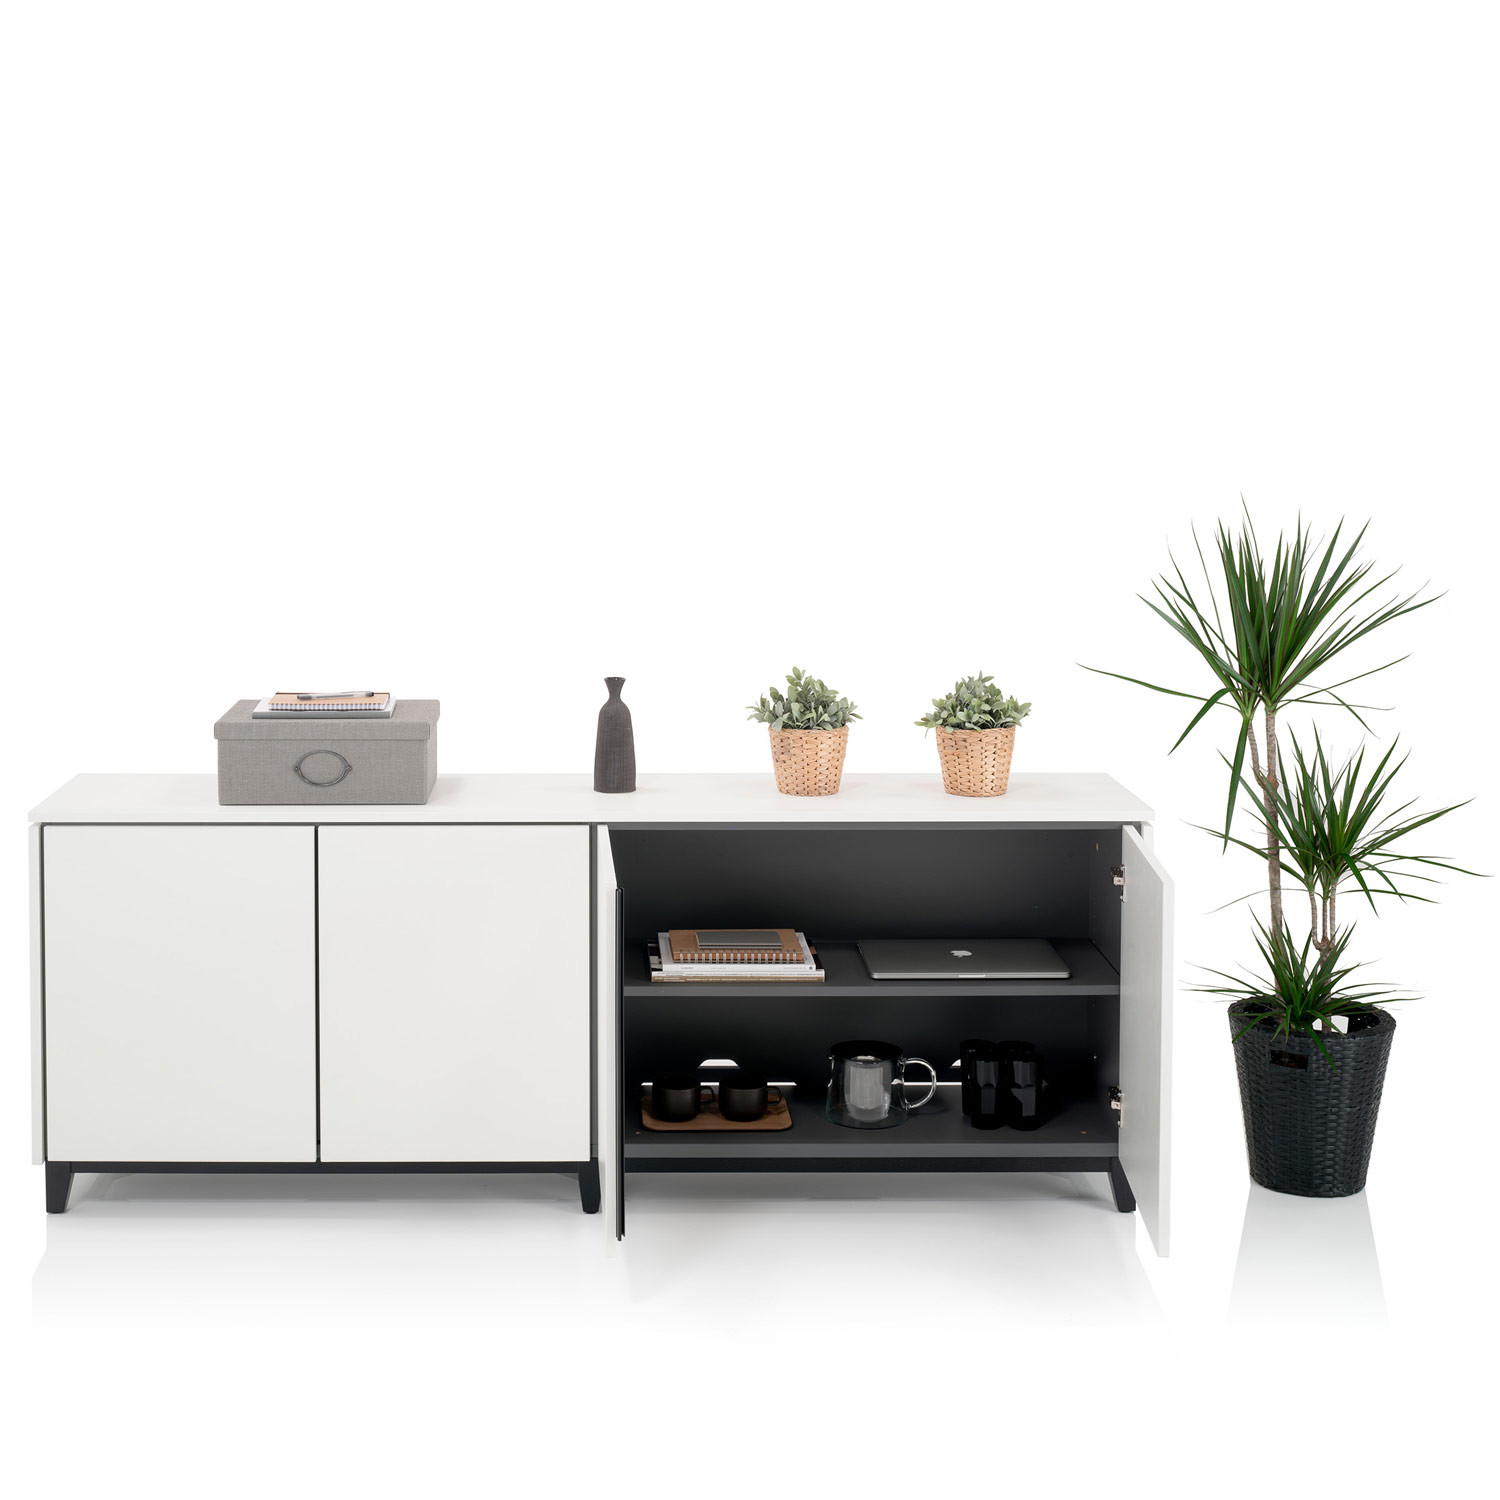 Vari Colour Four-Door Credenza